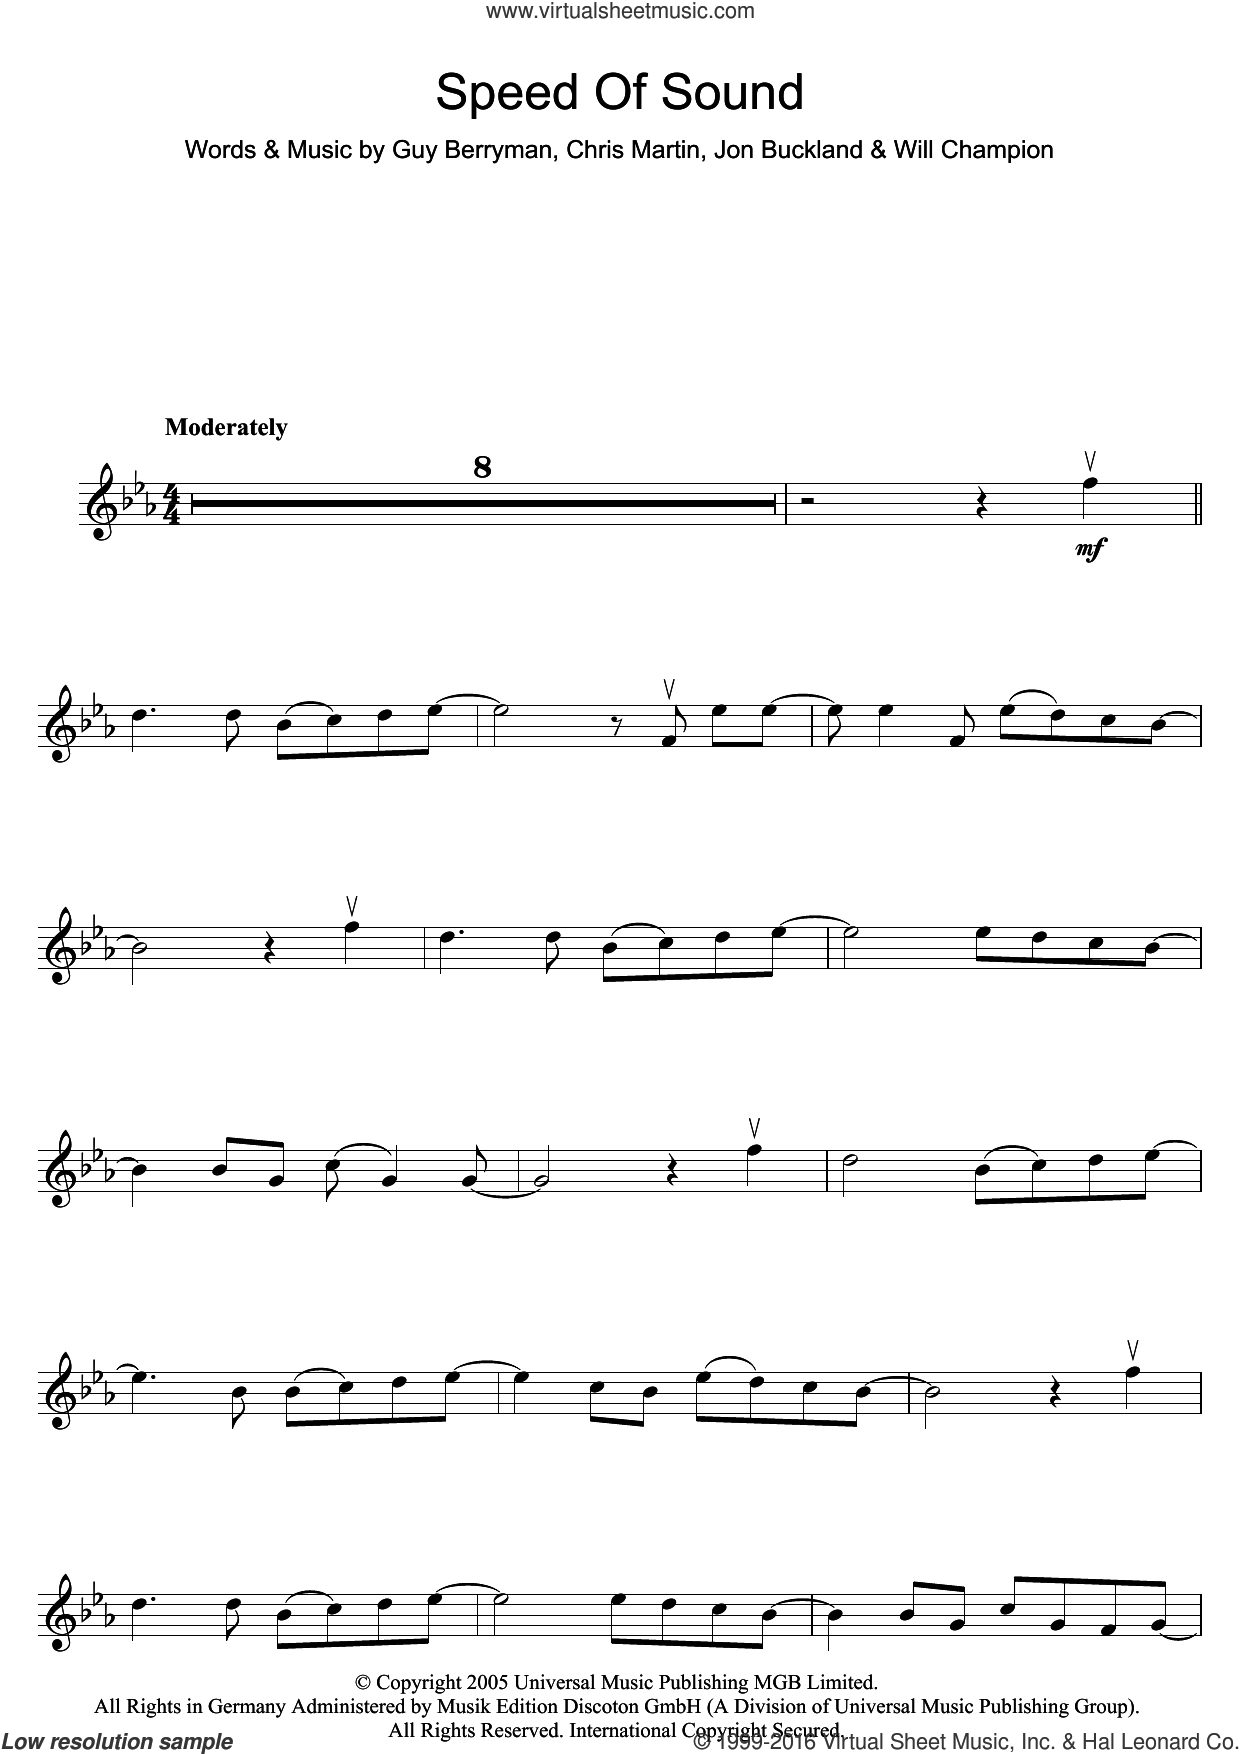 Speed Of Sound sheet music for violin solo by Coldplay, Chris Martin, Guy Berryman, Jonny Buckland and Will Champion, intermediate skill level